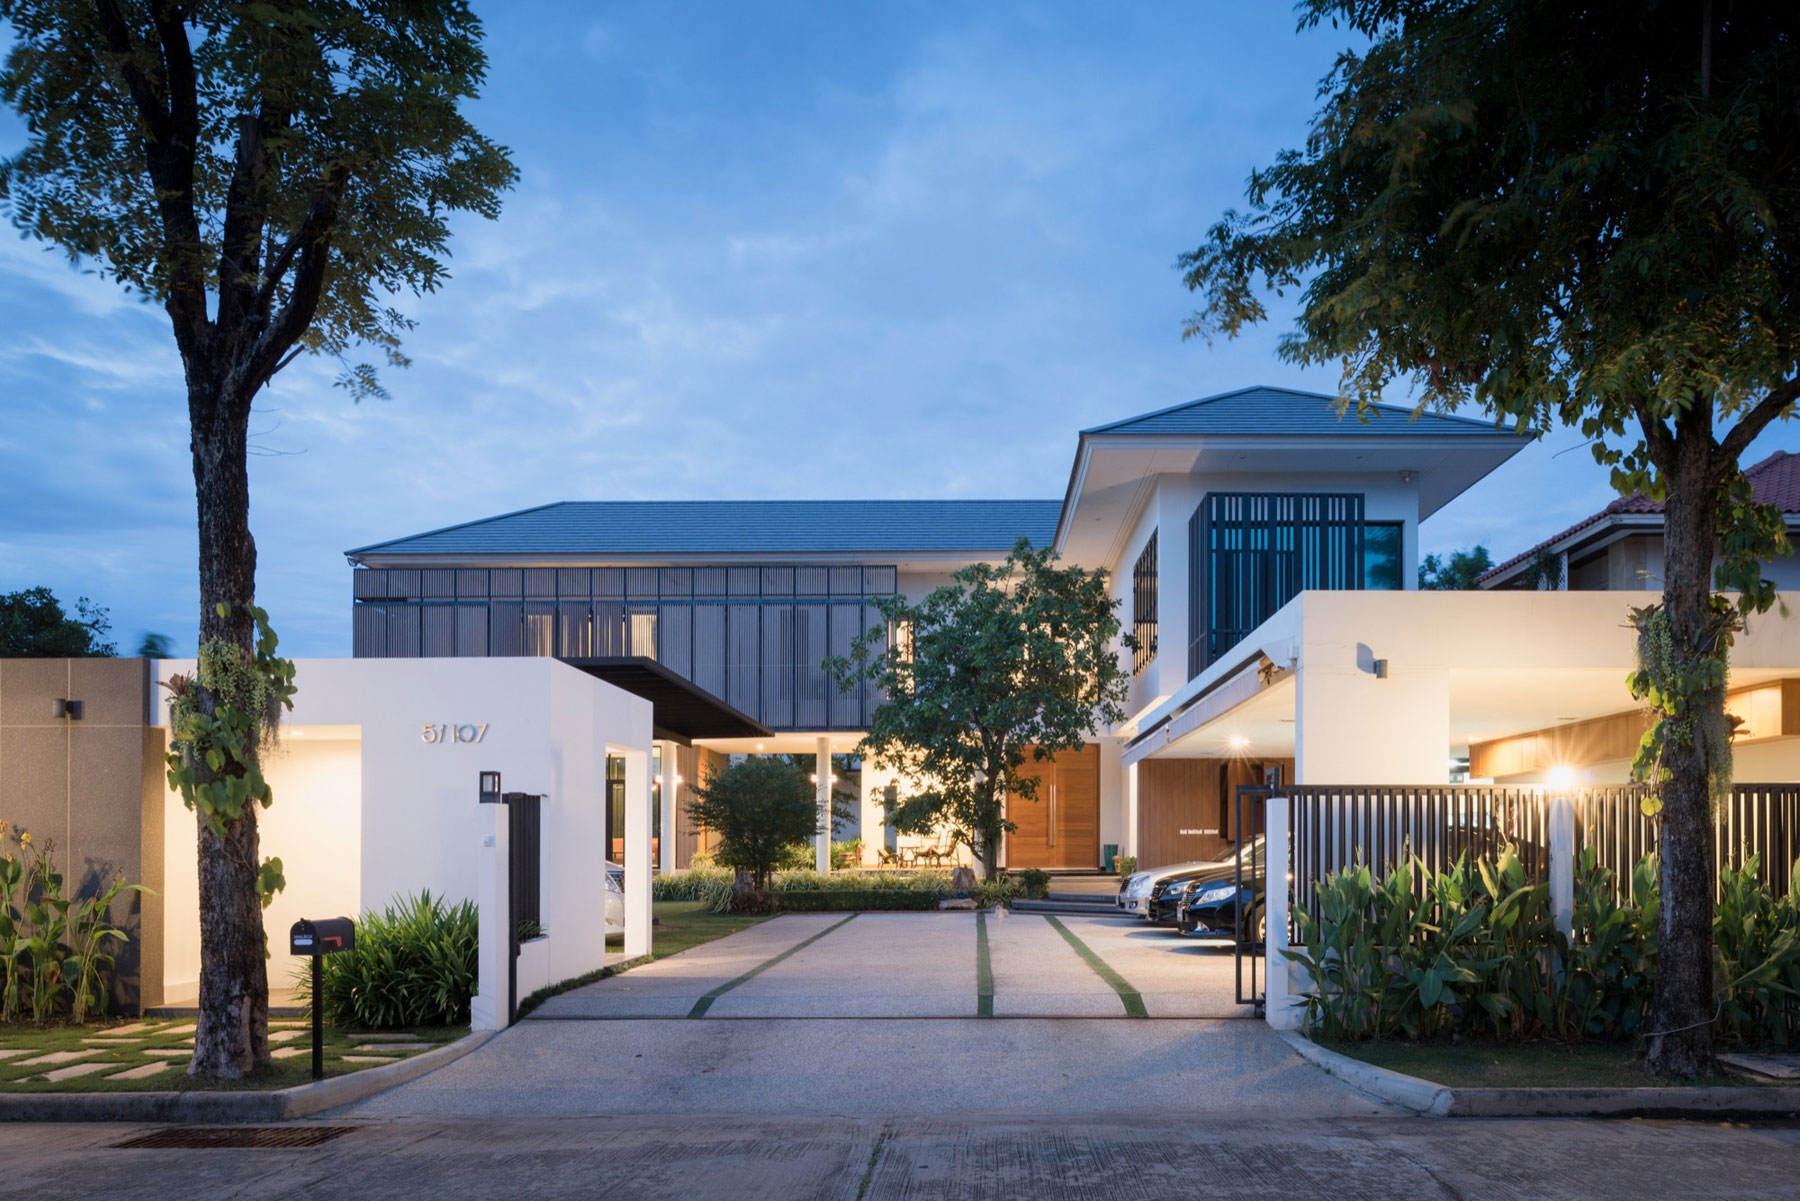 House design thailand - Archimontage Design Fields Sophisticated Design A Private Residence In Nonthaburi Thailand